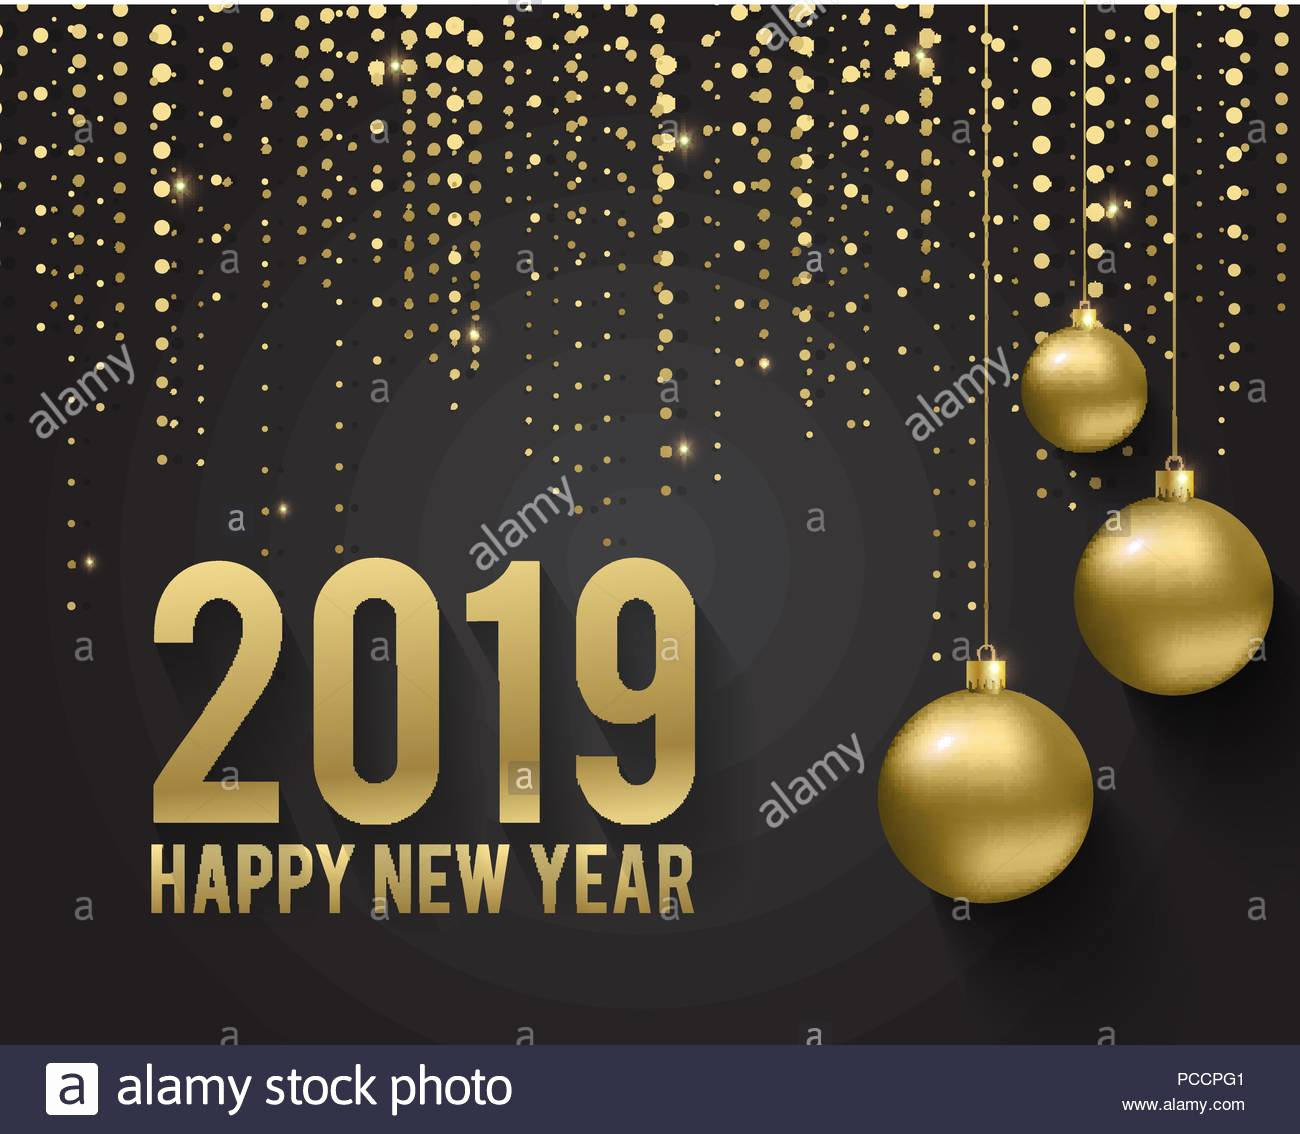 greeting card invitation with happy new year 2019 and christmas metallic gold christmas balls decoration shimmering shiny confetti on a black bac image